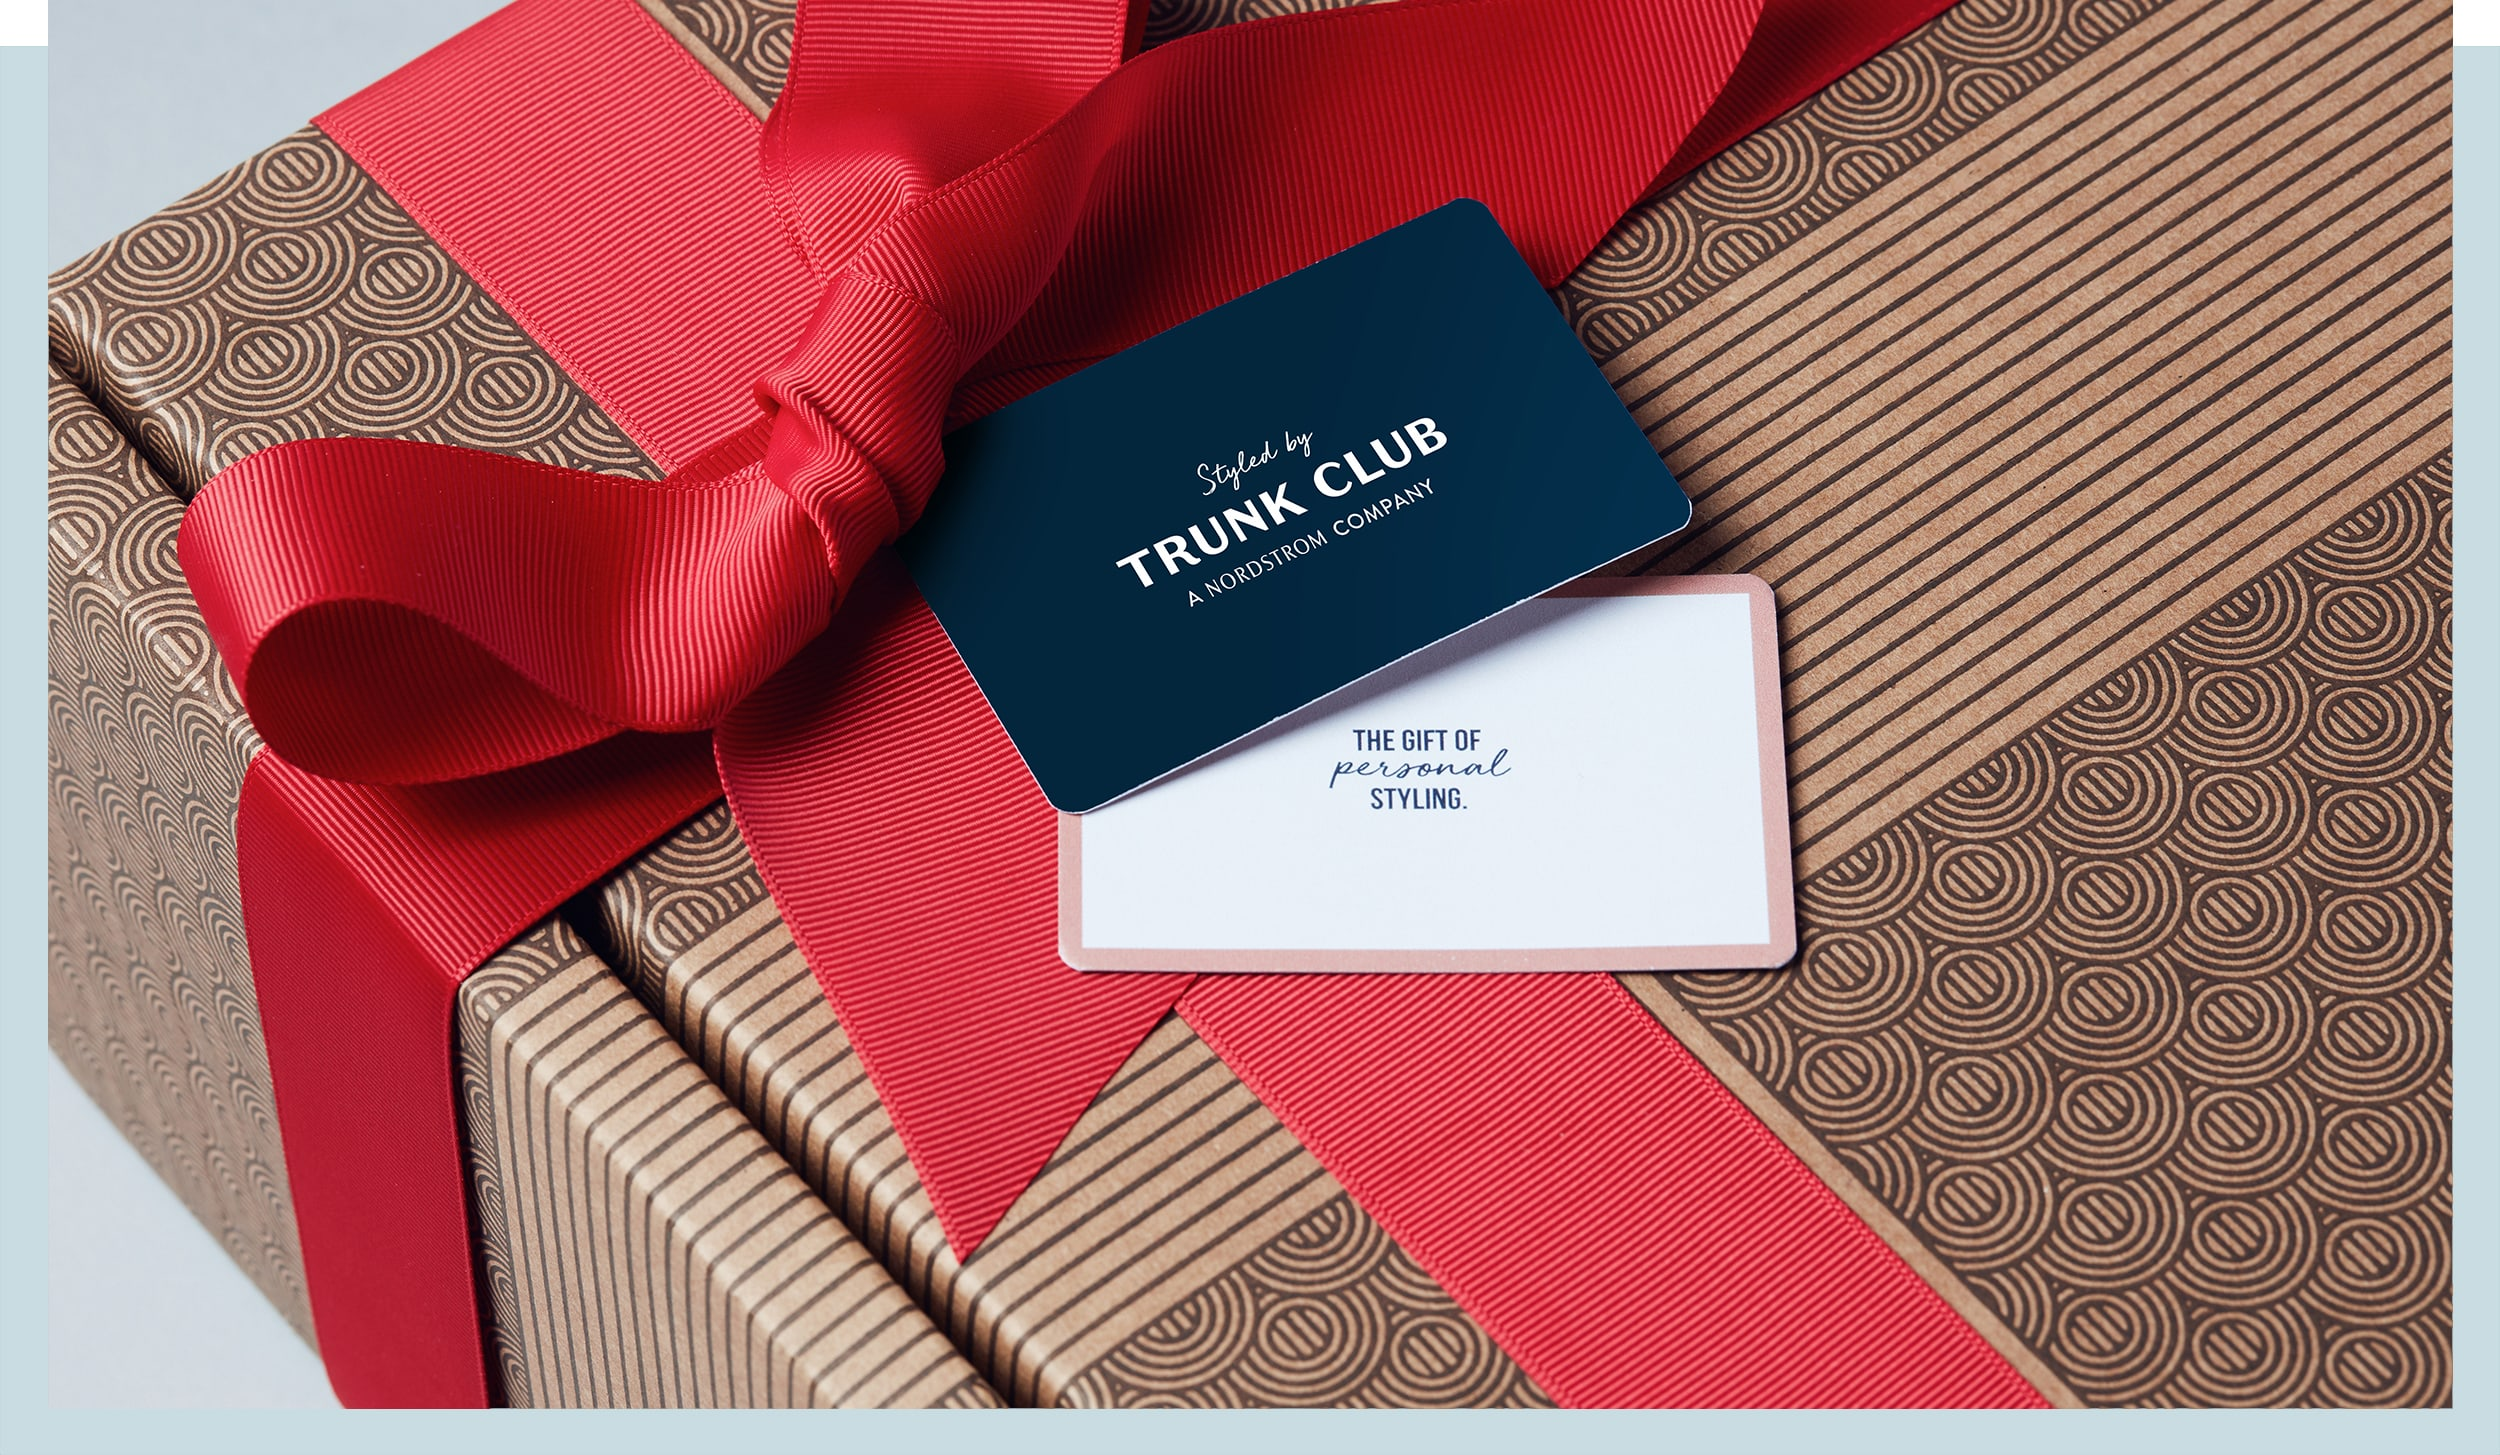 Trunk Club gift card.